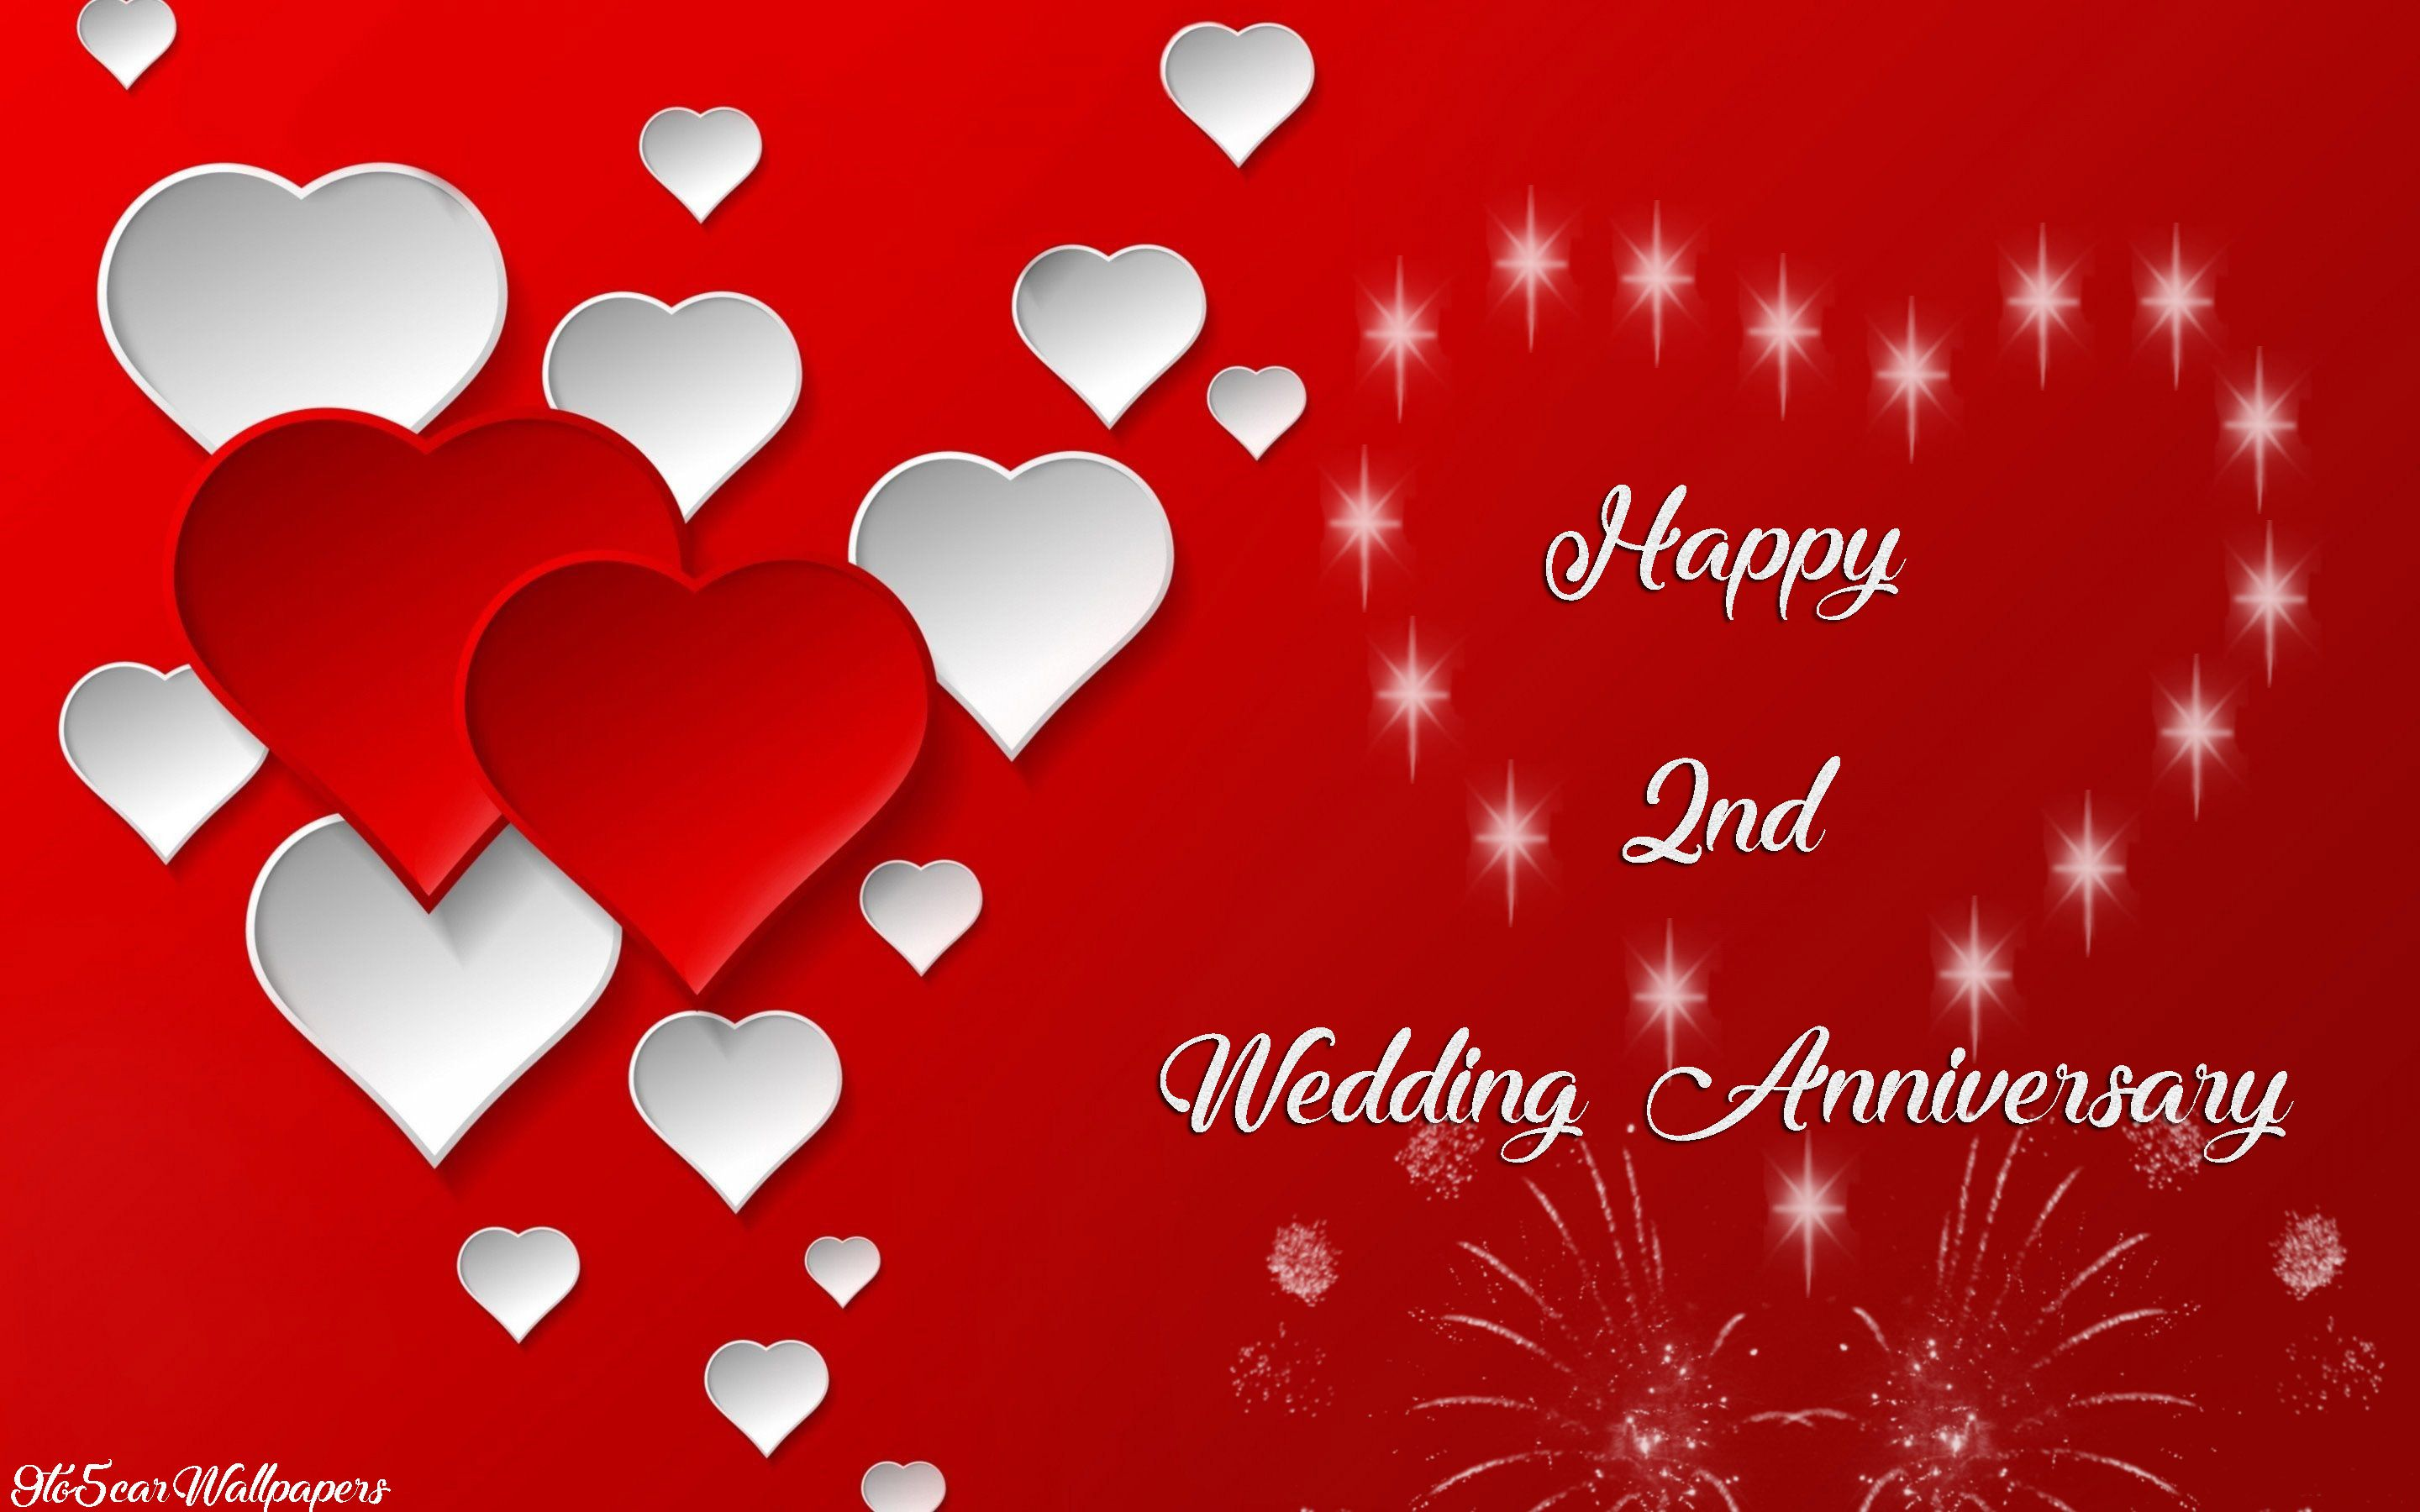 Second Marriage Anniversary Images Downloads Happy Anniversary Wishes Happy Marriage Anniversary 1st Wedding Anniversary Wishes